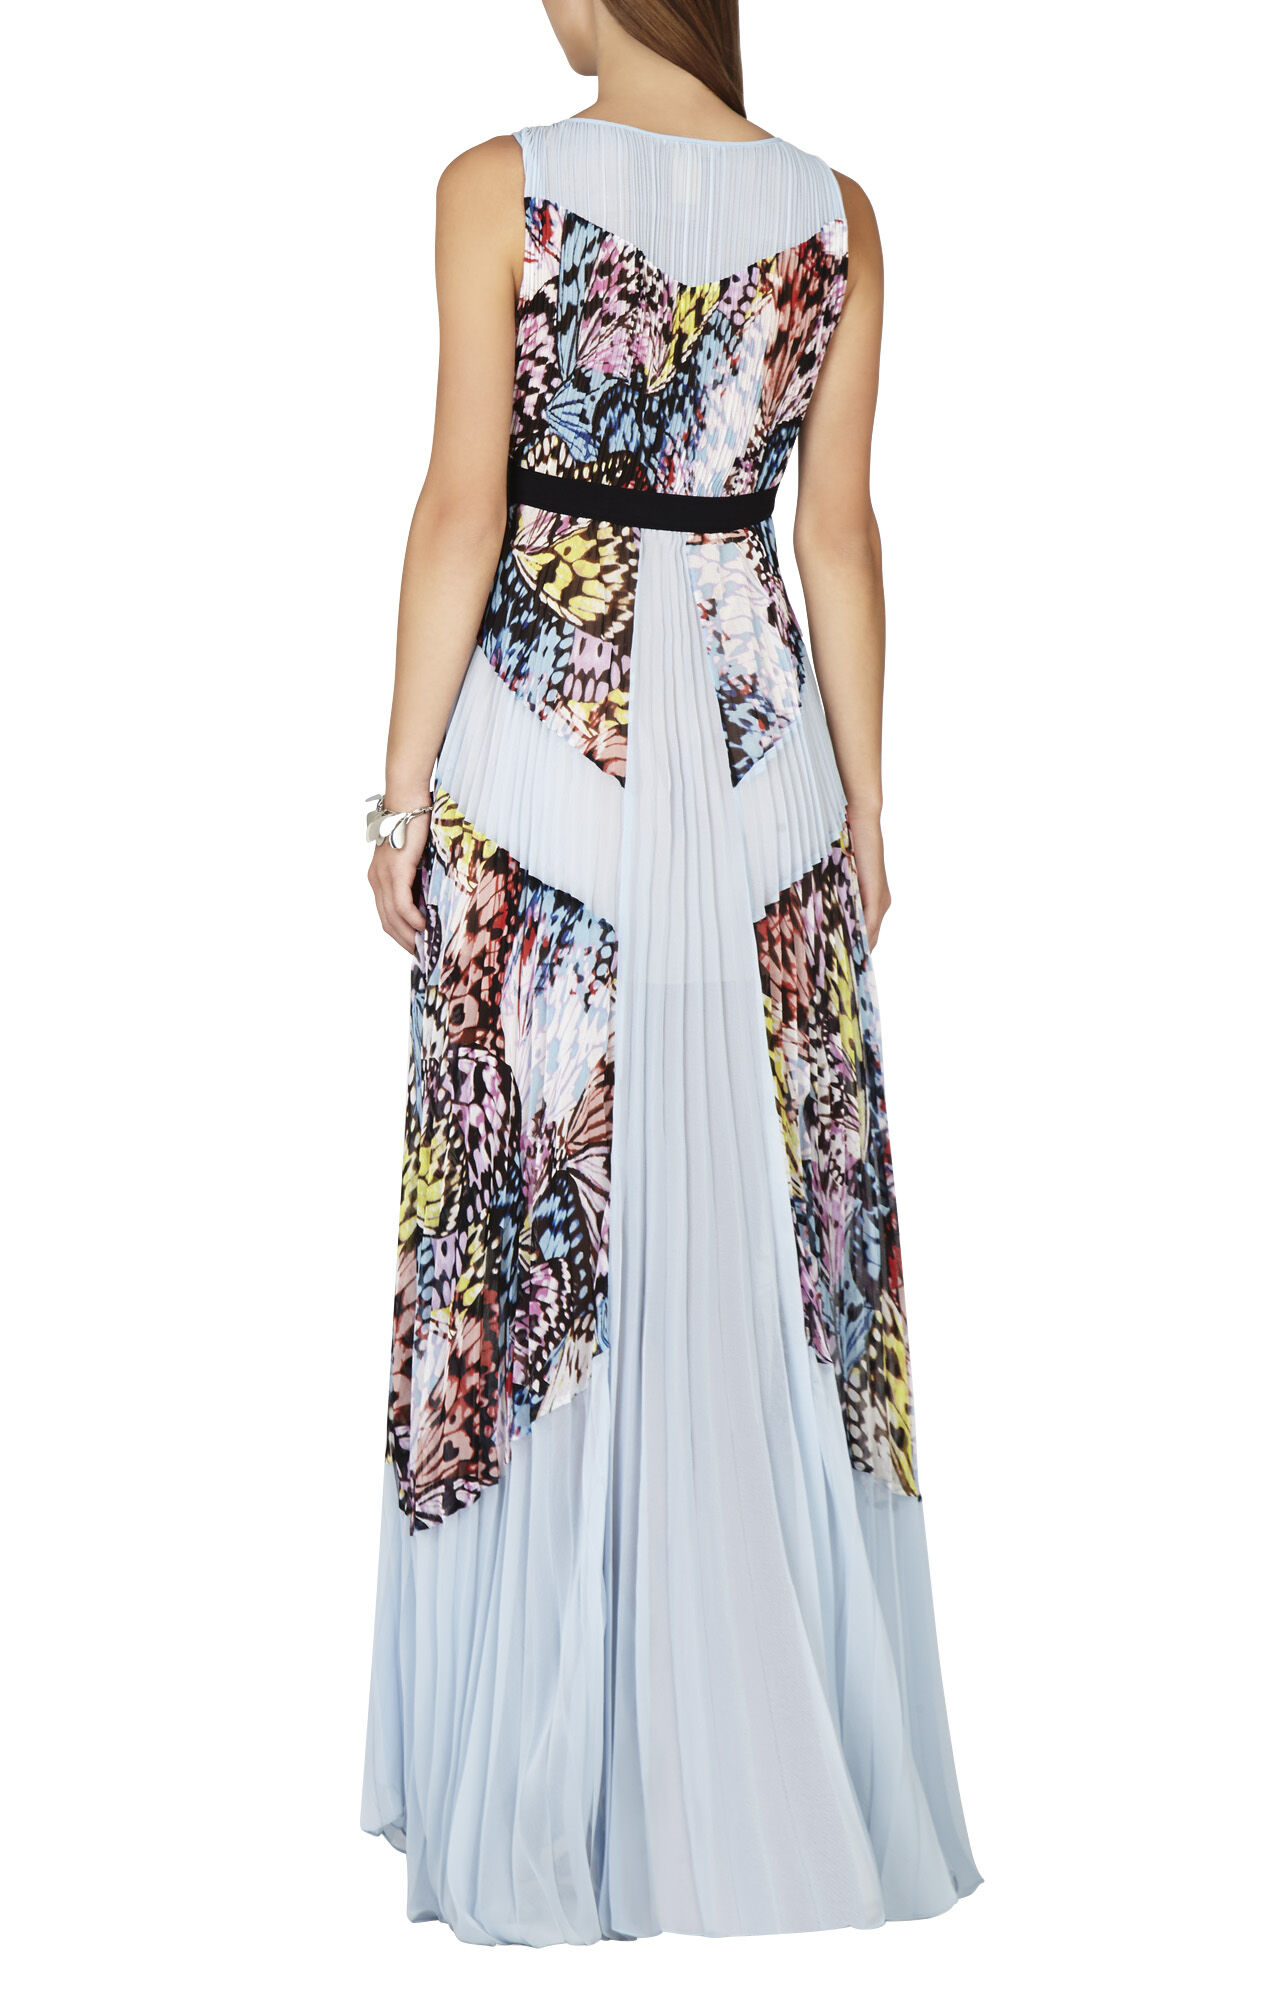 Kayda Halter-Neck Pleated Print-Blocked Gown